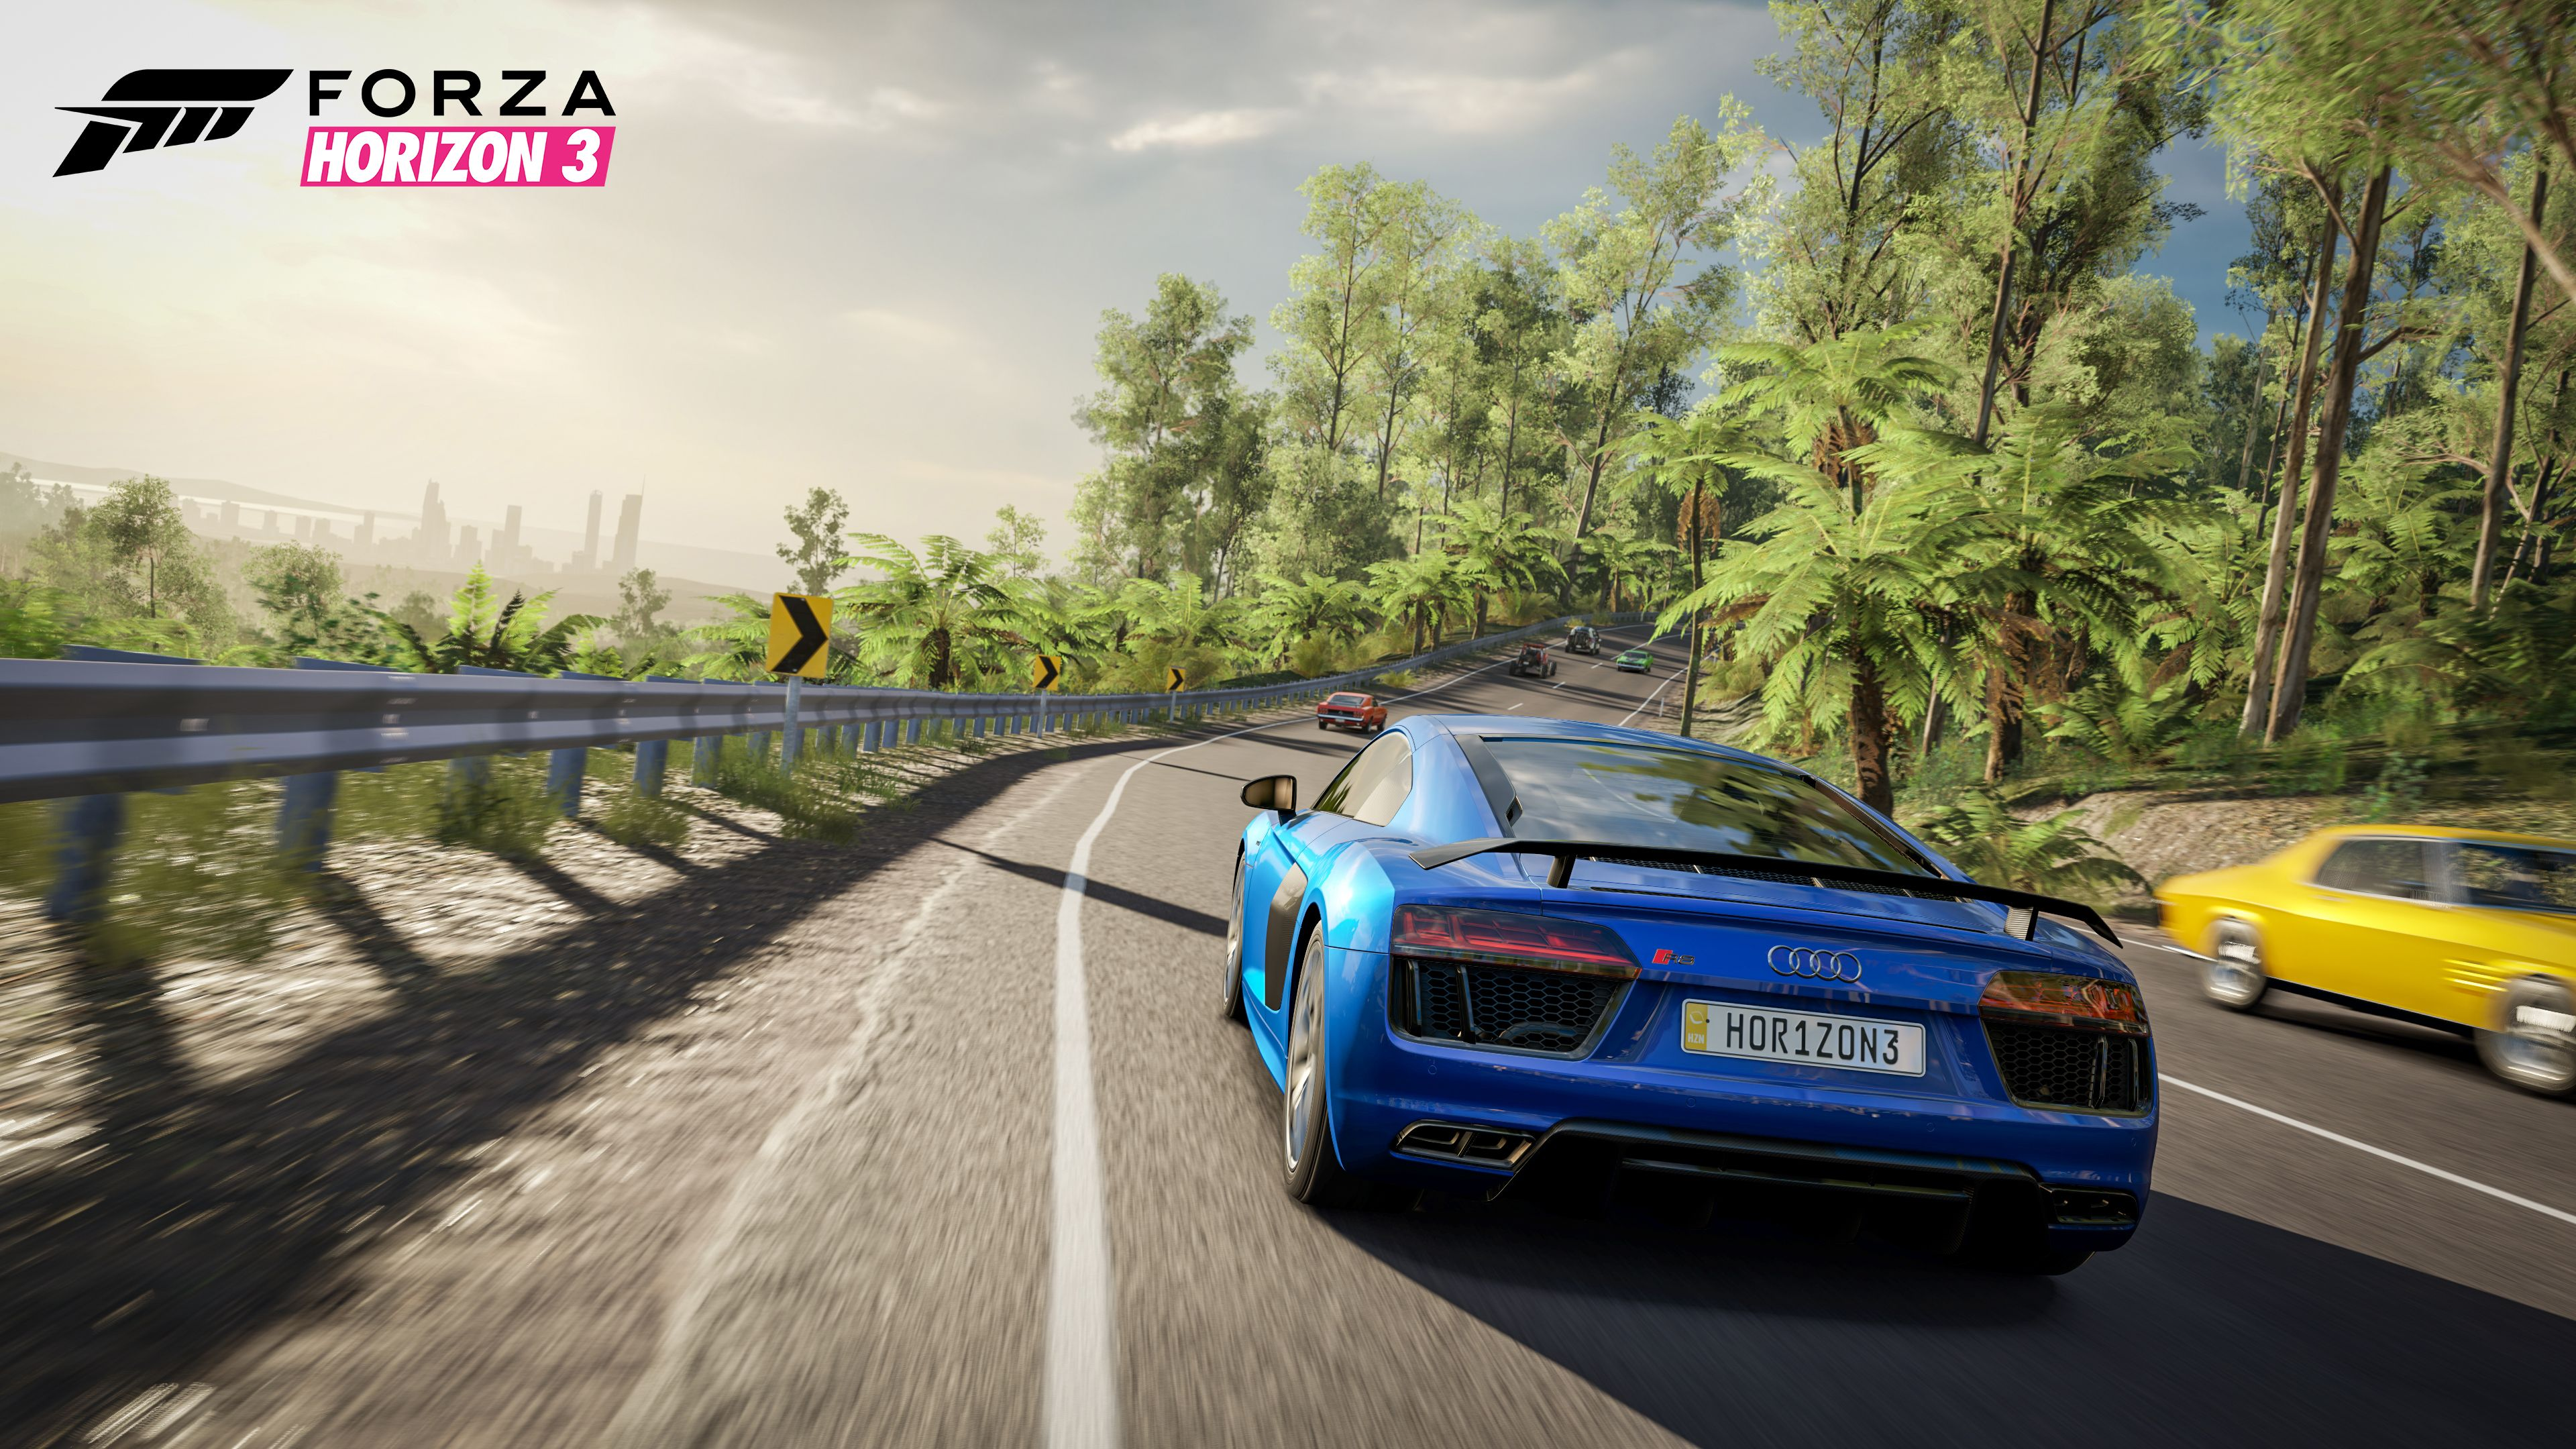 ForzaHorizon3_Gamescom_AudiJungleRoad_WM.jpg